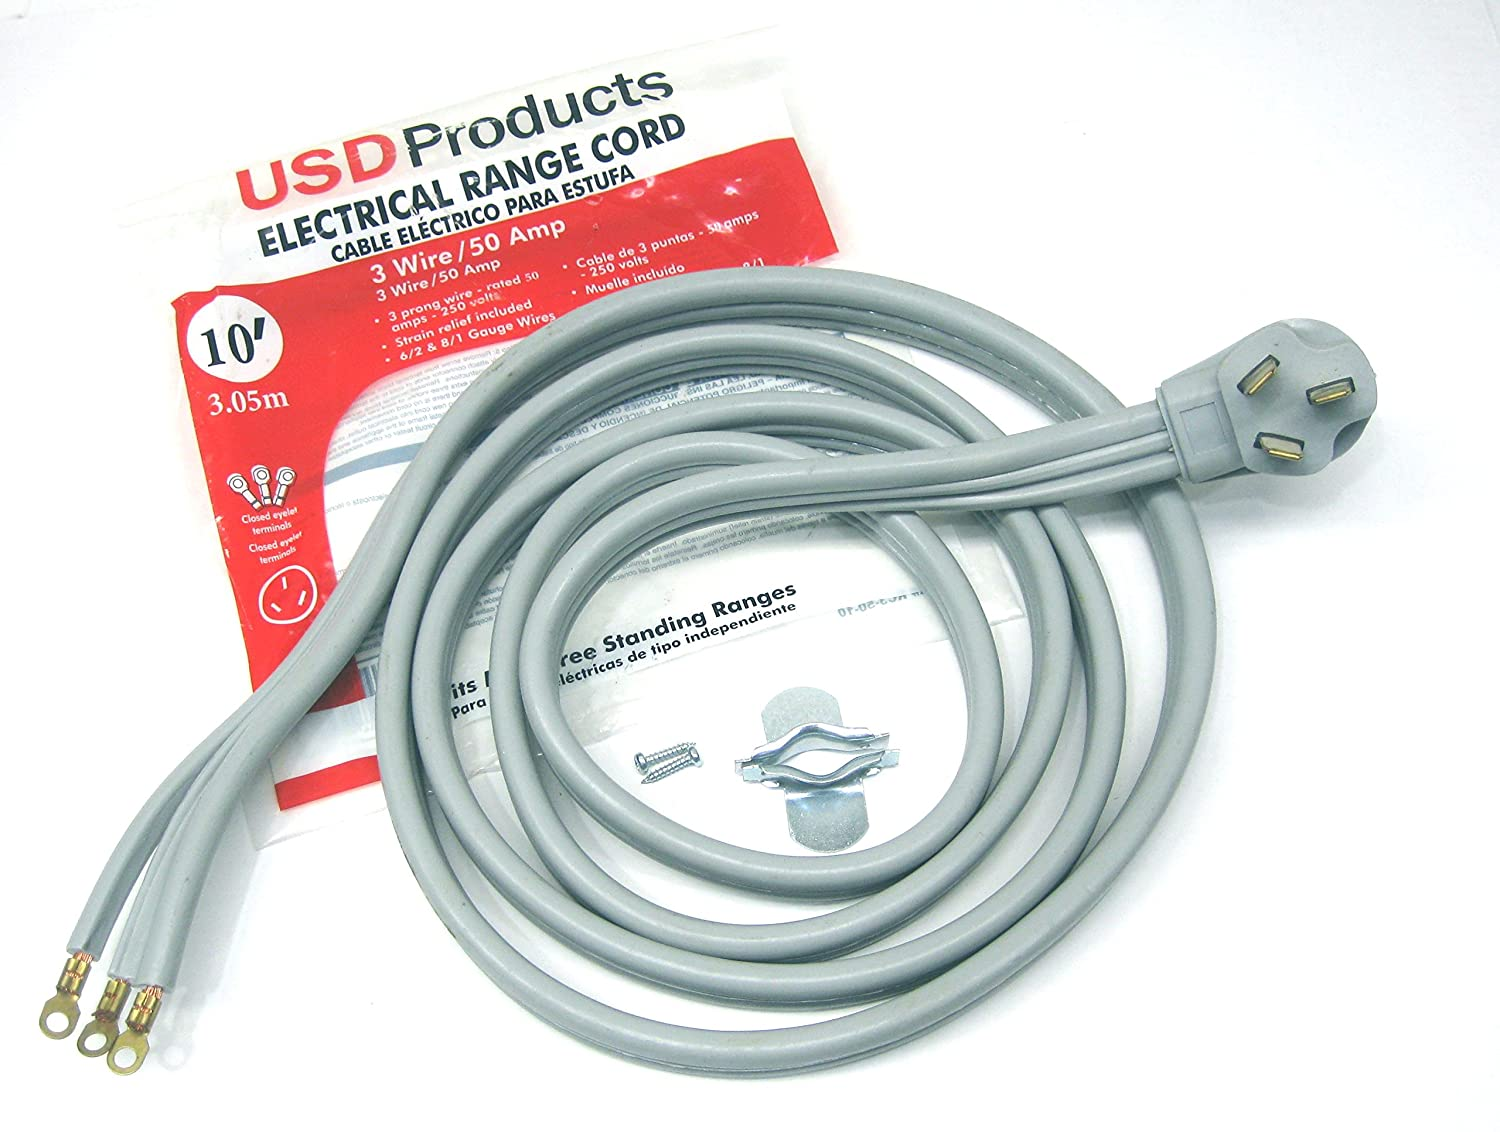 Amazon.com: USD Products Range Oven Electric Power Cord 3 Prong Wire ...